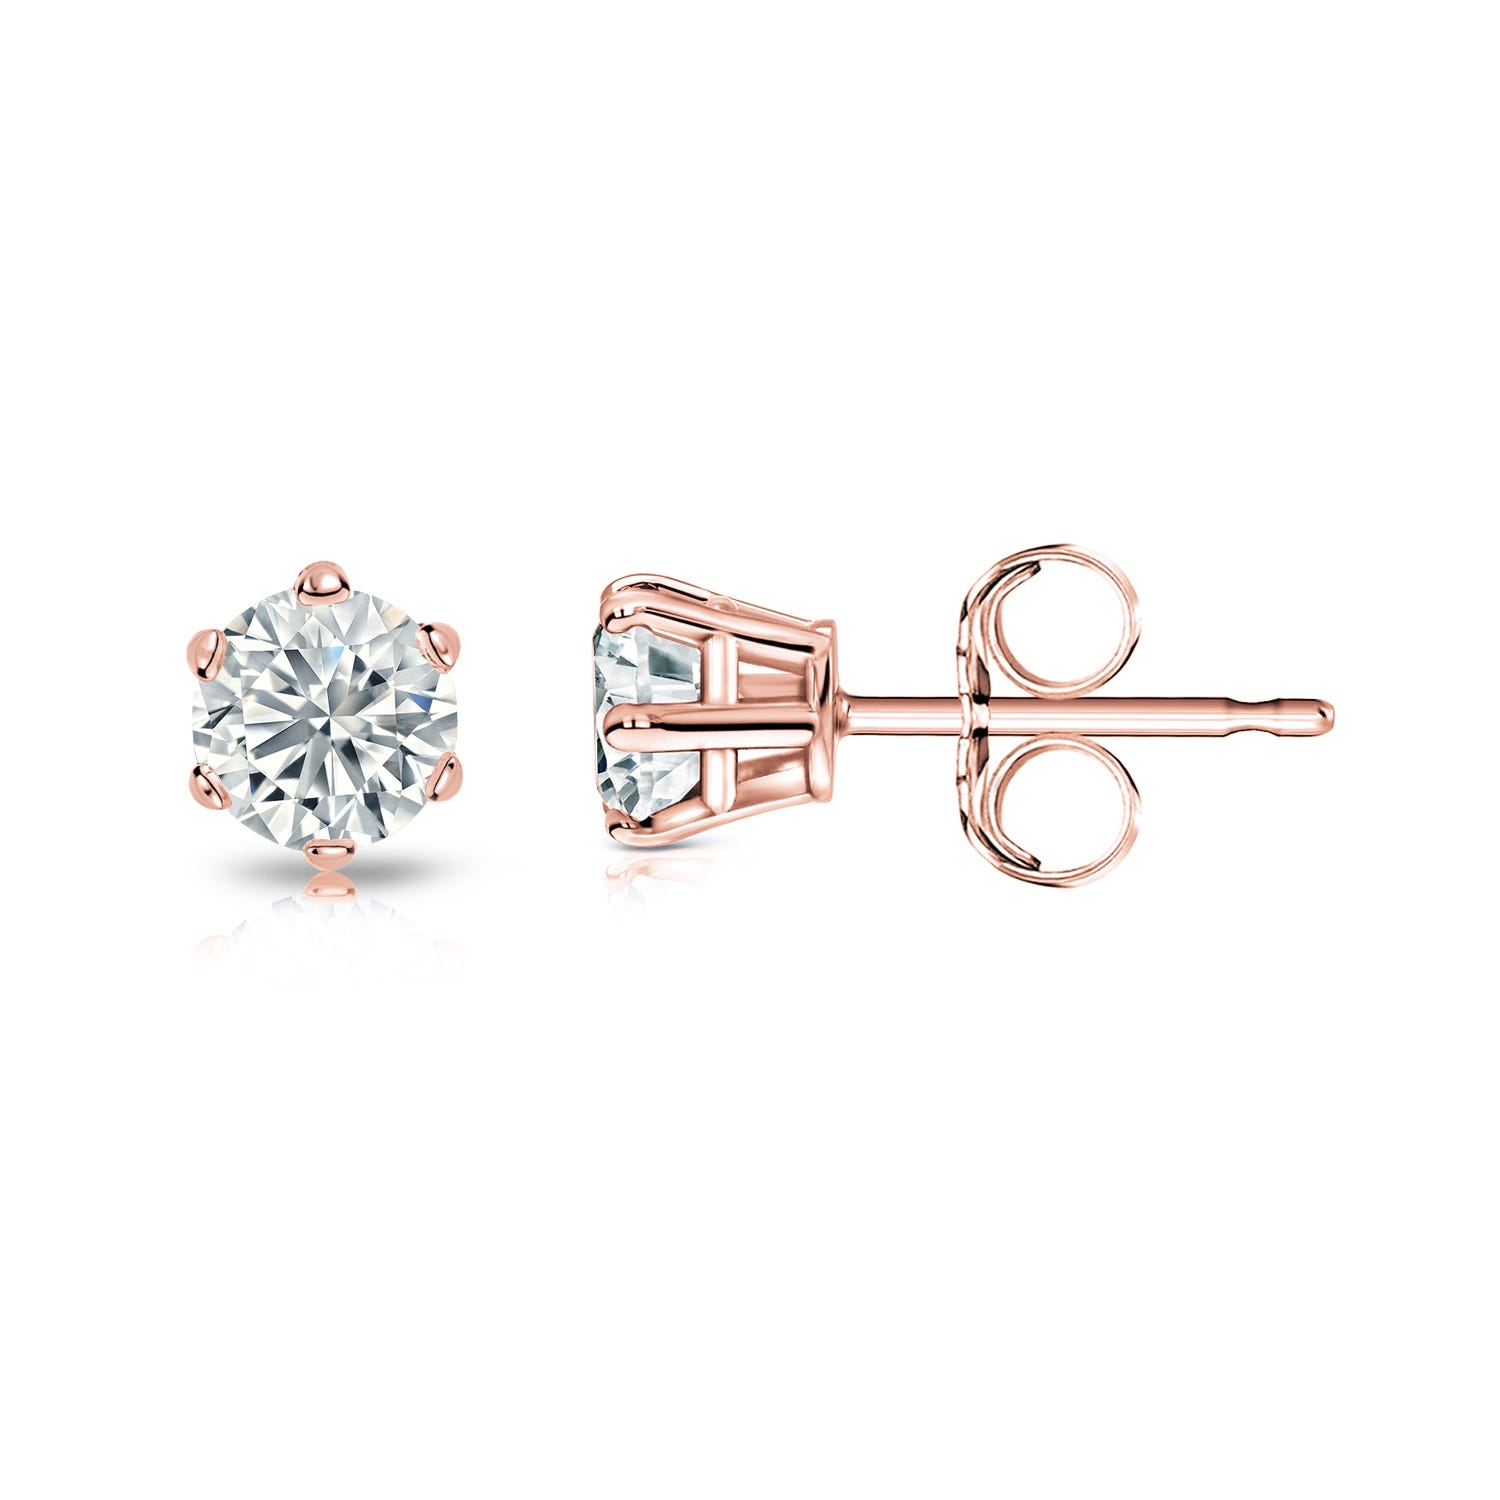 Round Diamond 1/7ctw. (IJ-SI2) Solitaire Stud 6-Prong Earrings in 14K Rose Gold